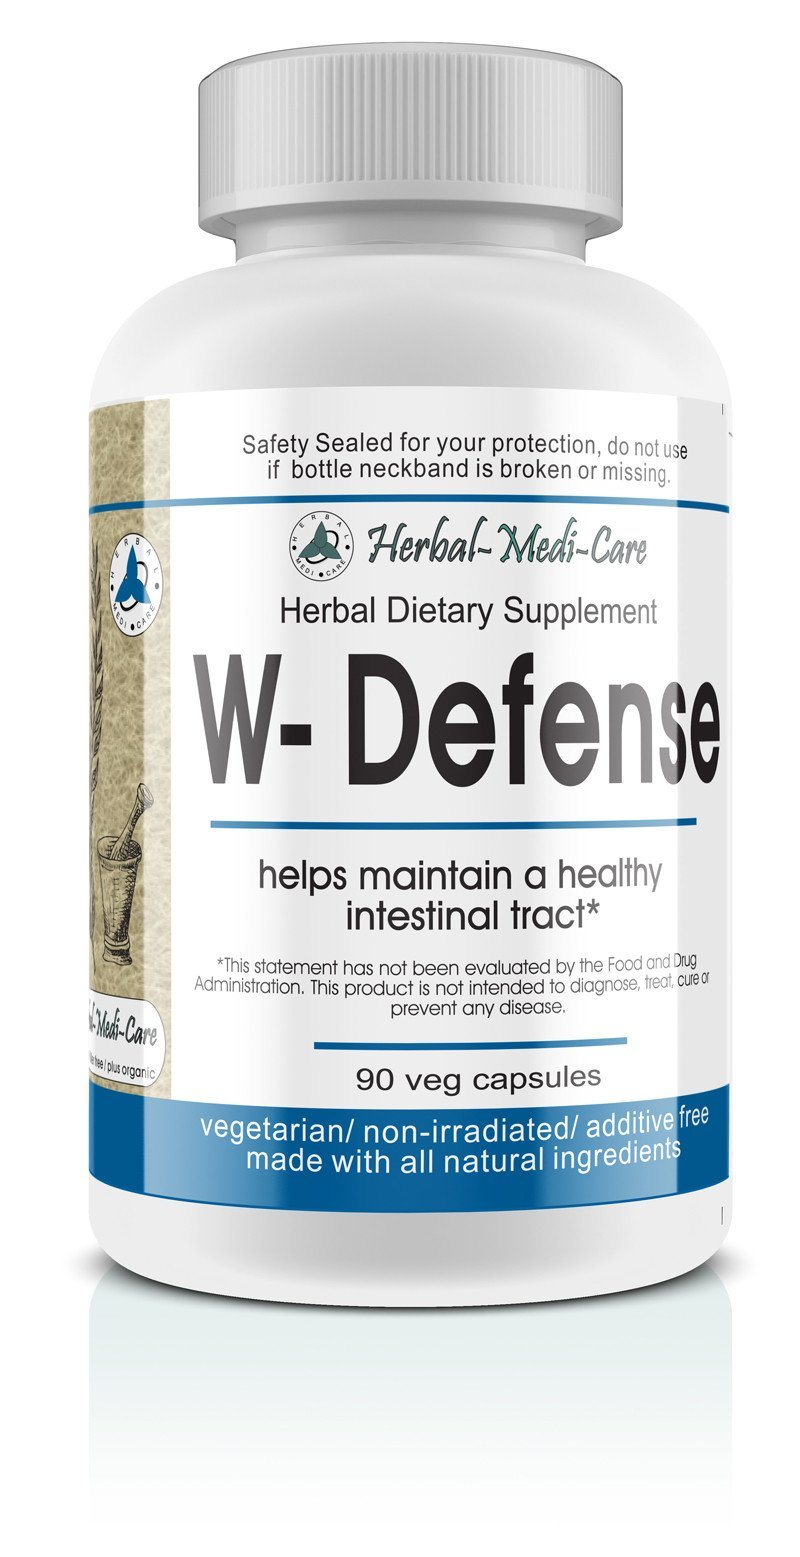 Herbal-Medi-Care Whole Food W-Defense (Intestinal Invaders) Vegetarian Capsules; 90-Count - Herbal-Medi-Care Whole Food W-Defense (Intestinal Invaders) Vegetarian Capsules; 90-Count - Herbal-Medi-Care Whole Food W-Defense (Intestinal Invaders) Vegetarian Capsules; 90-Count